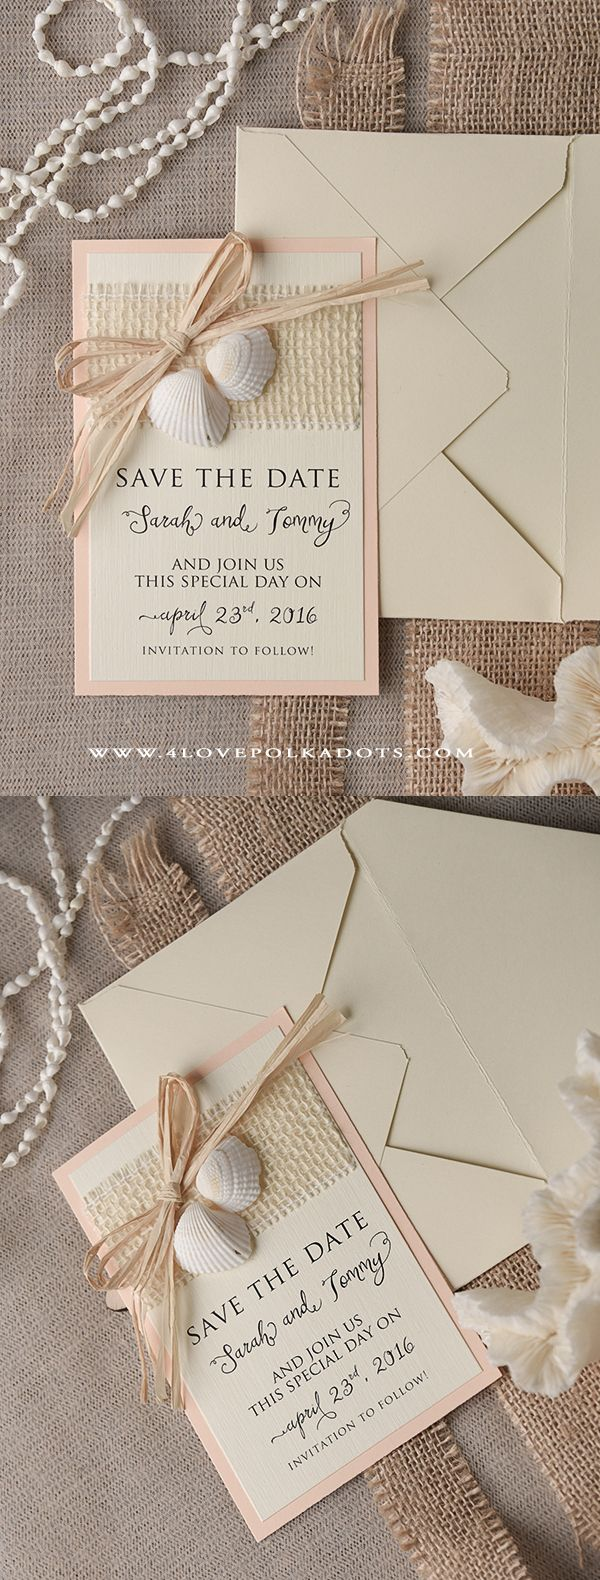 destination wedding save the dates and invitations%0A Please Save the Date   Beach Wedding Save the Date Seashells Card   beachwedding  destinationwedding